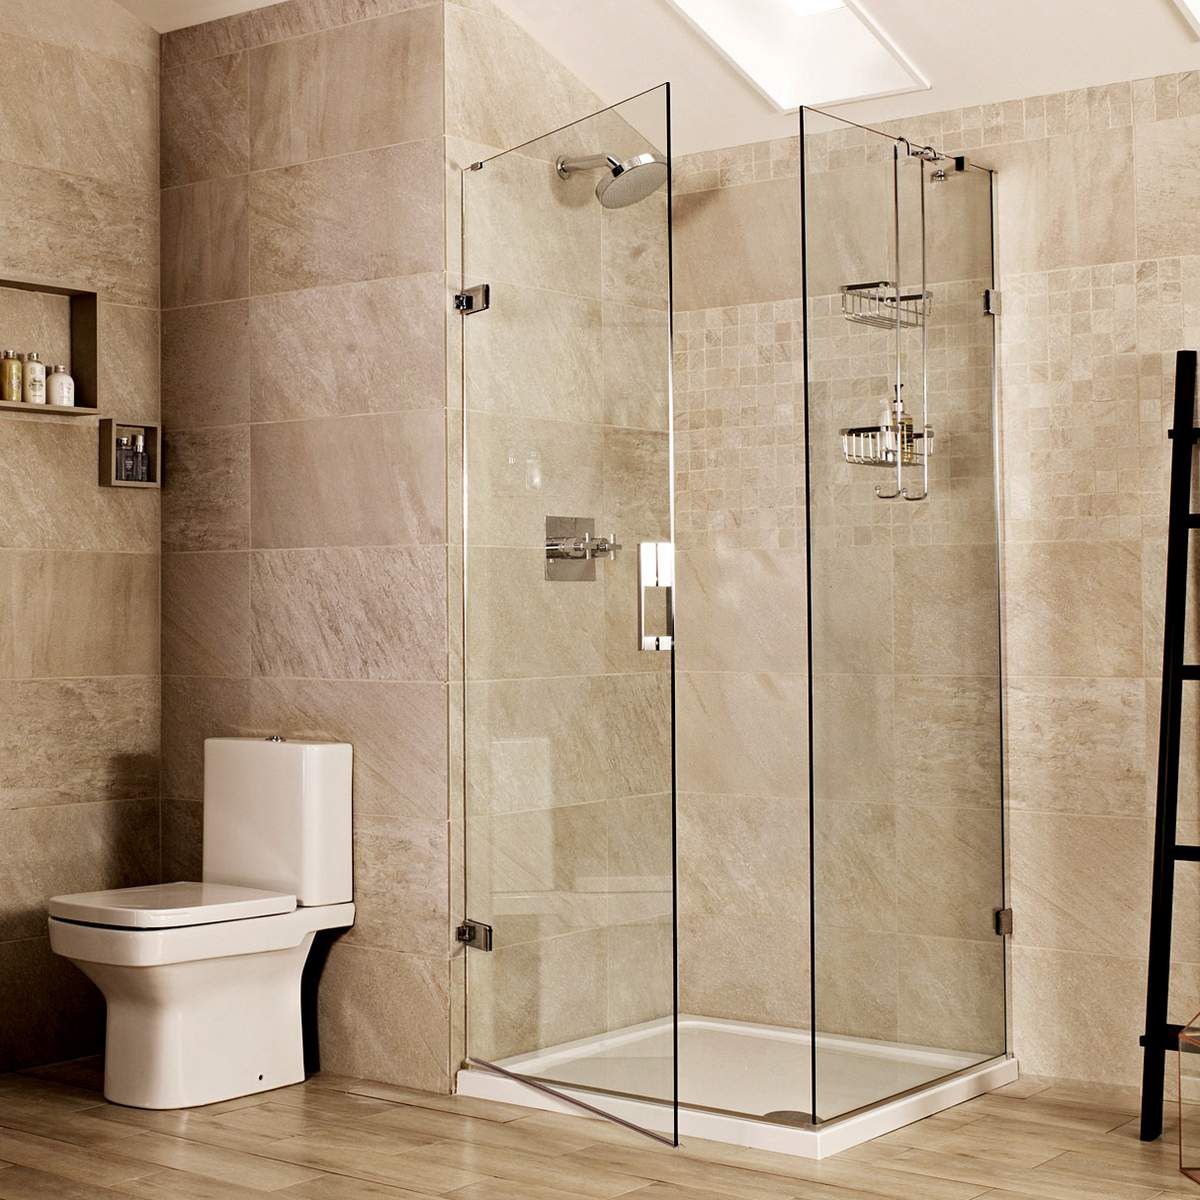 picture of a hinged shower door